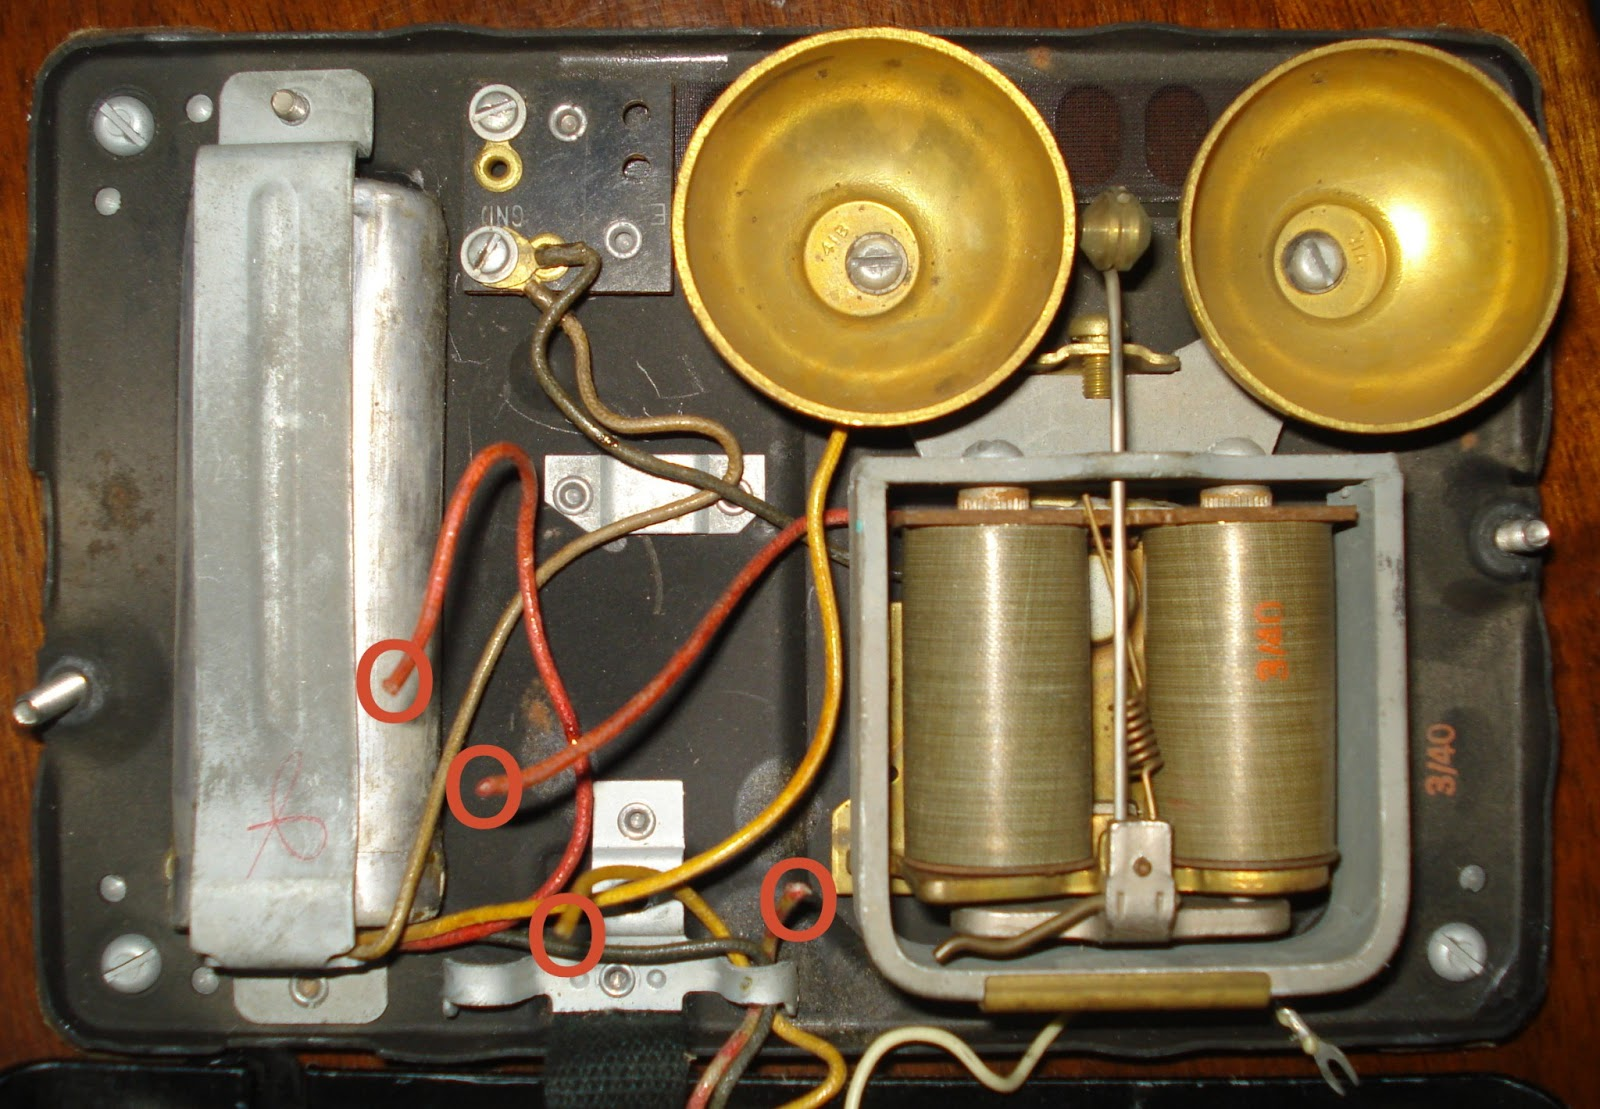 medium resolution of can you help me to rewire this very old telephone telephones old telephone wiring colors